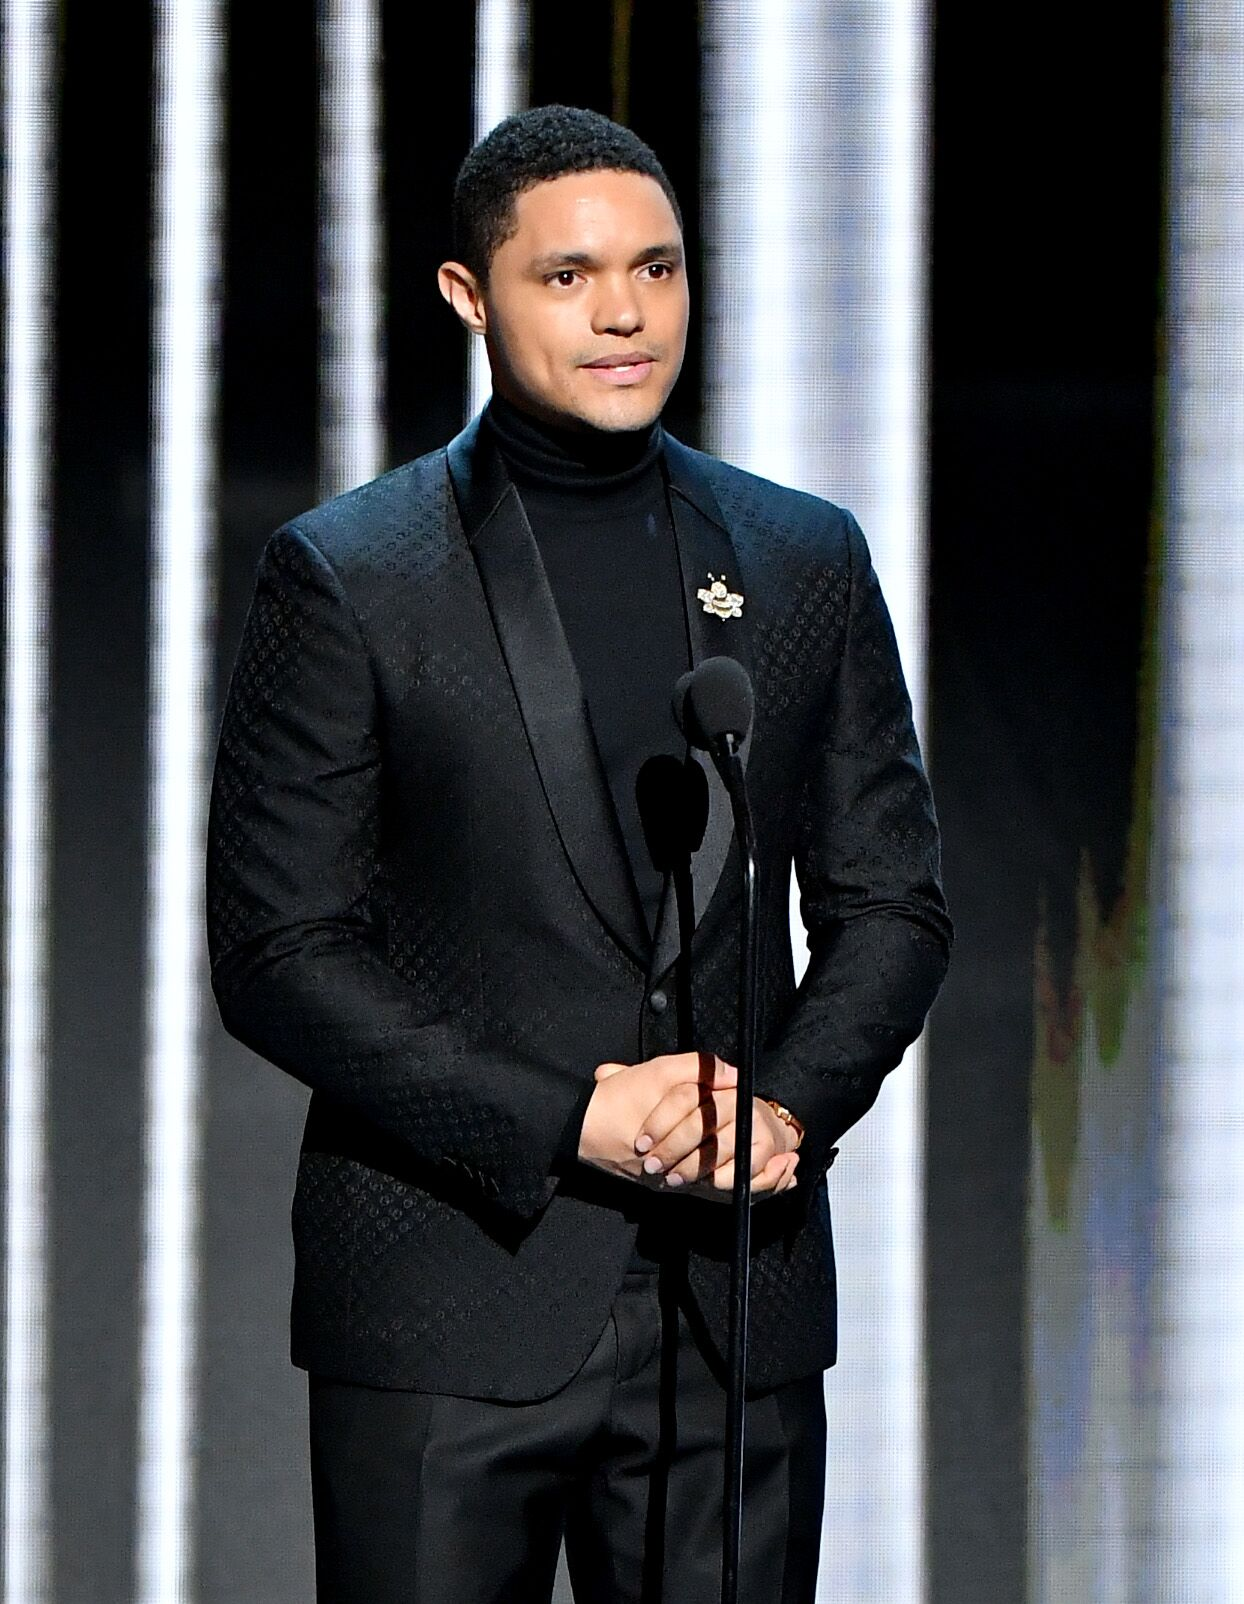 Trevor Noah onstage at the 50th NAACP Image Awards in 2019 in Hollywood | Source: Getty Images